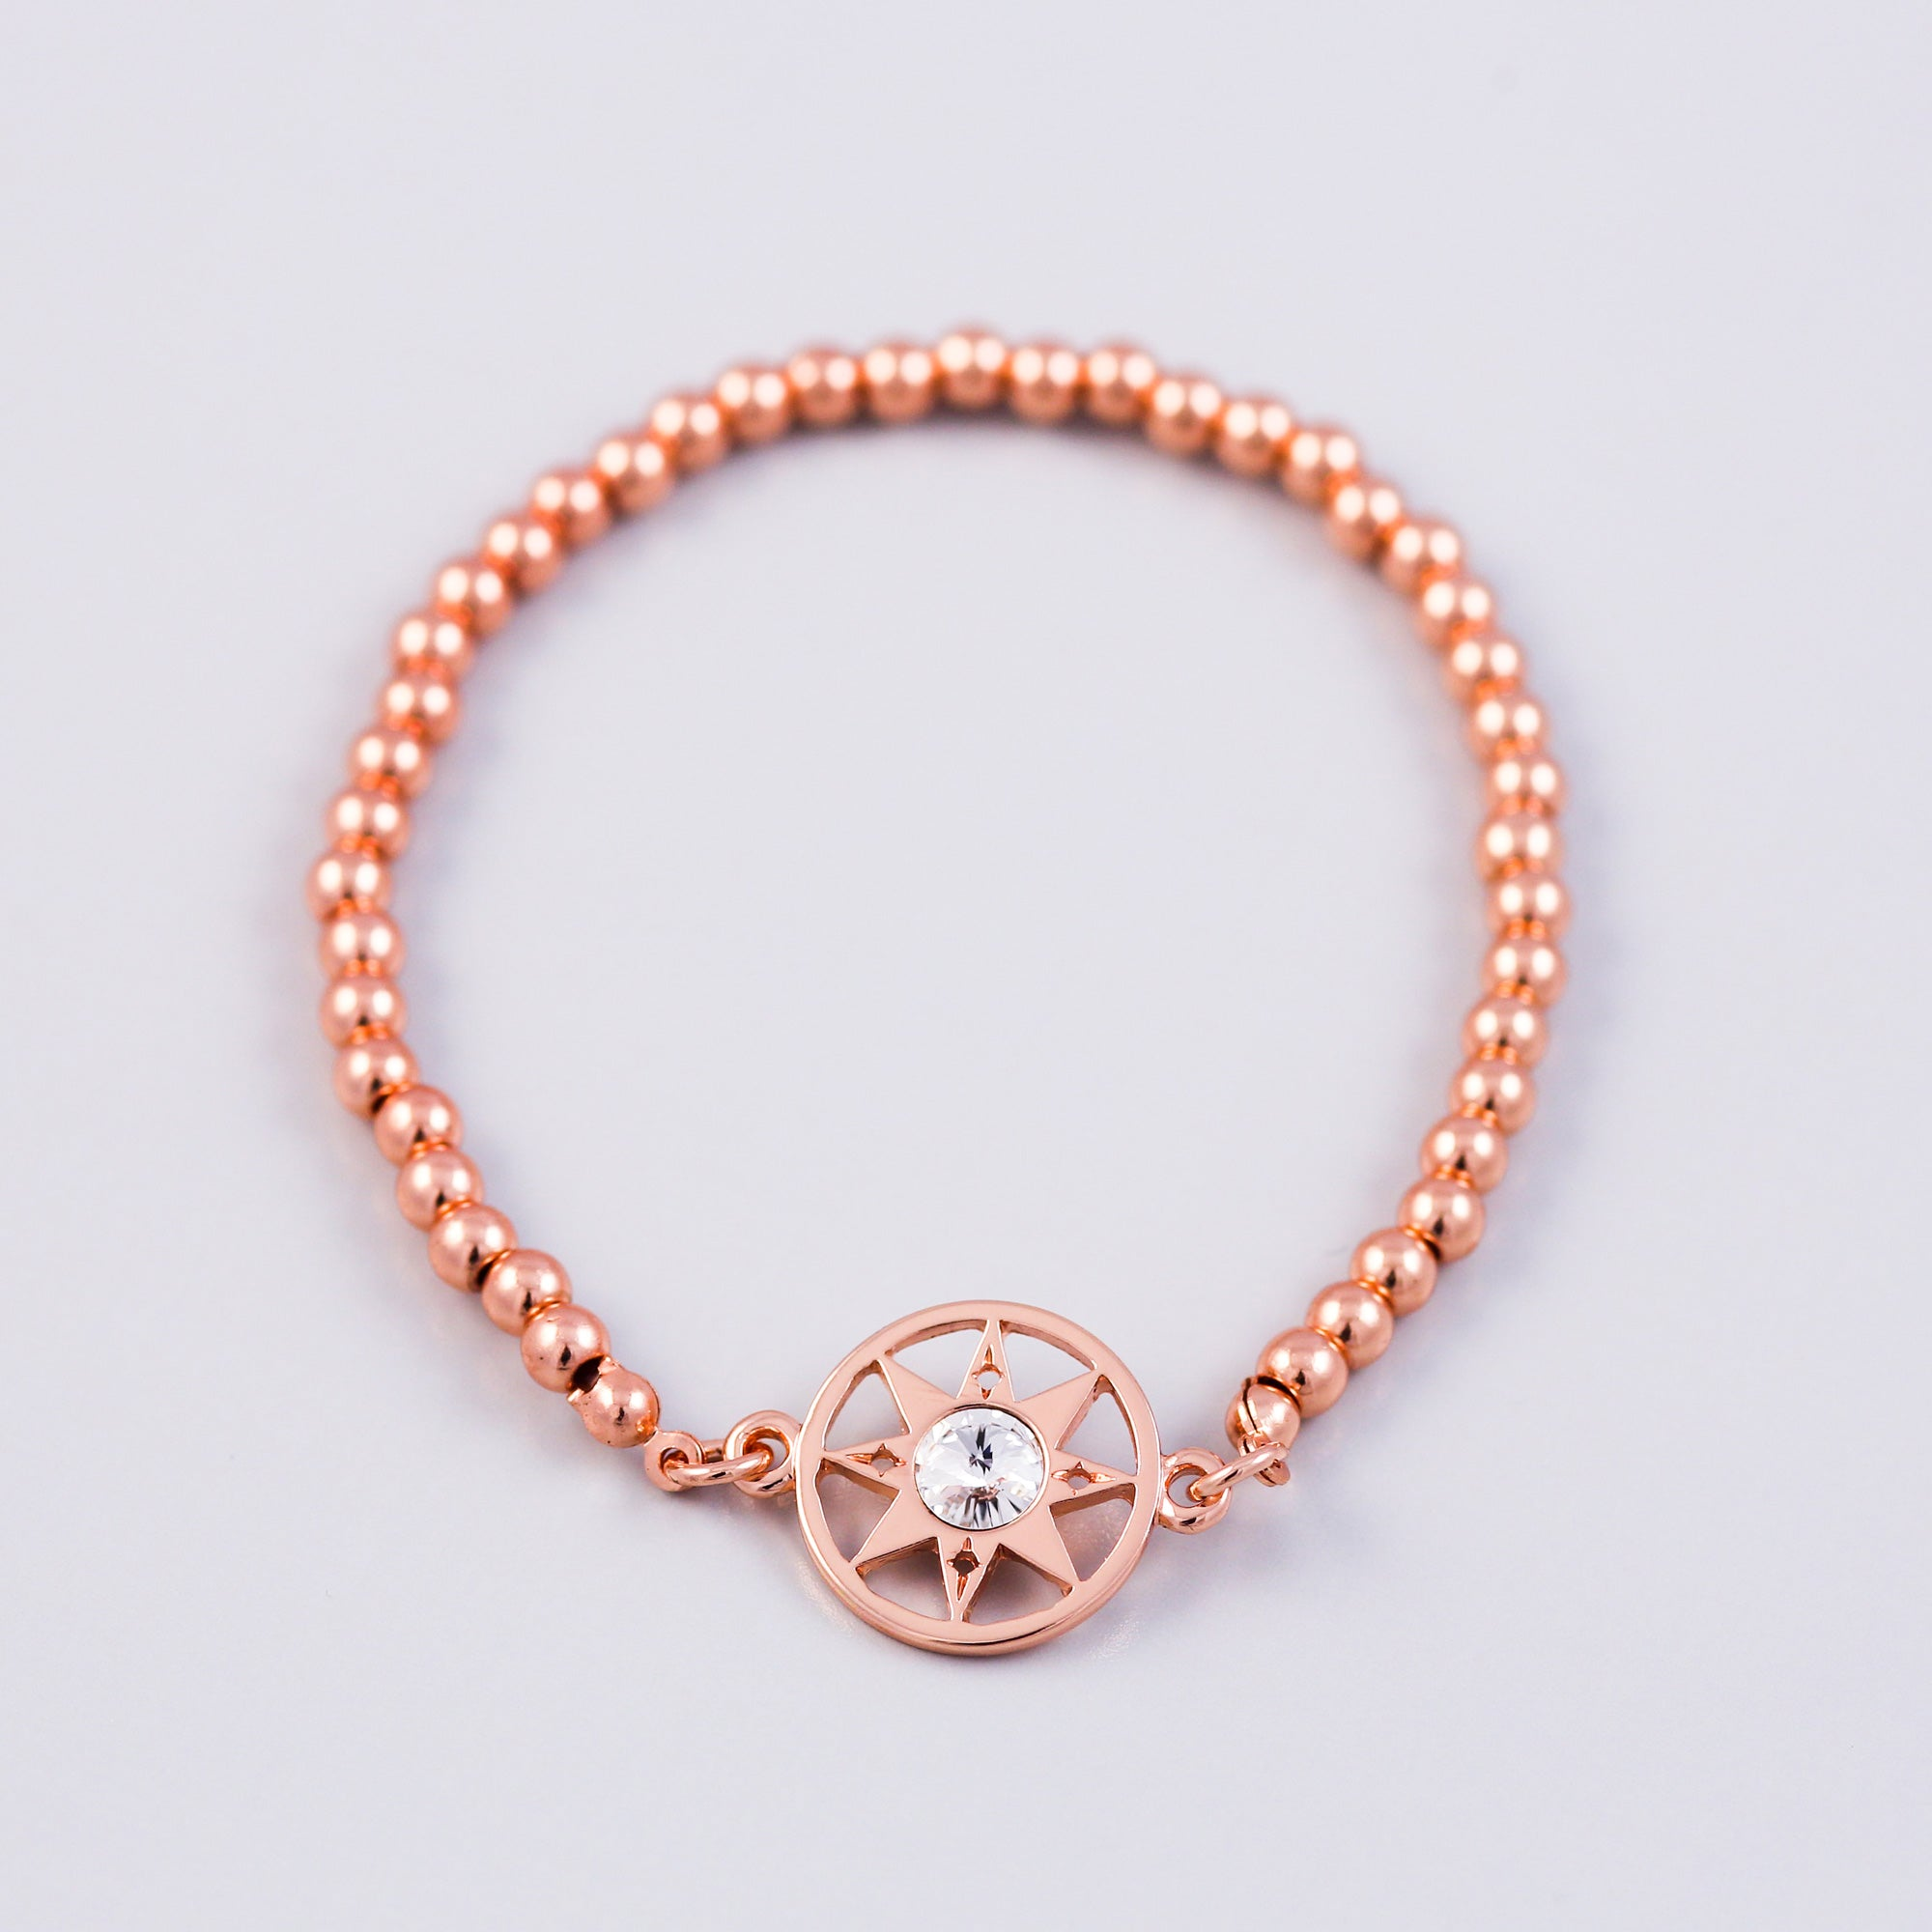 Compass Bracelet | Bridal Jewellery | Rose Gold & Metallic Bead